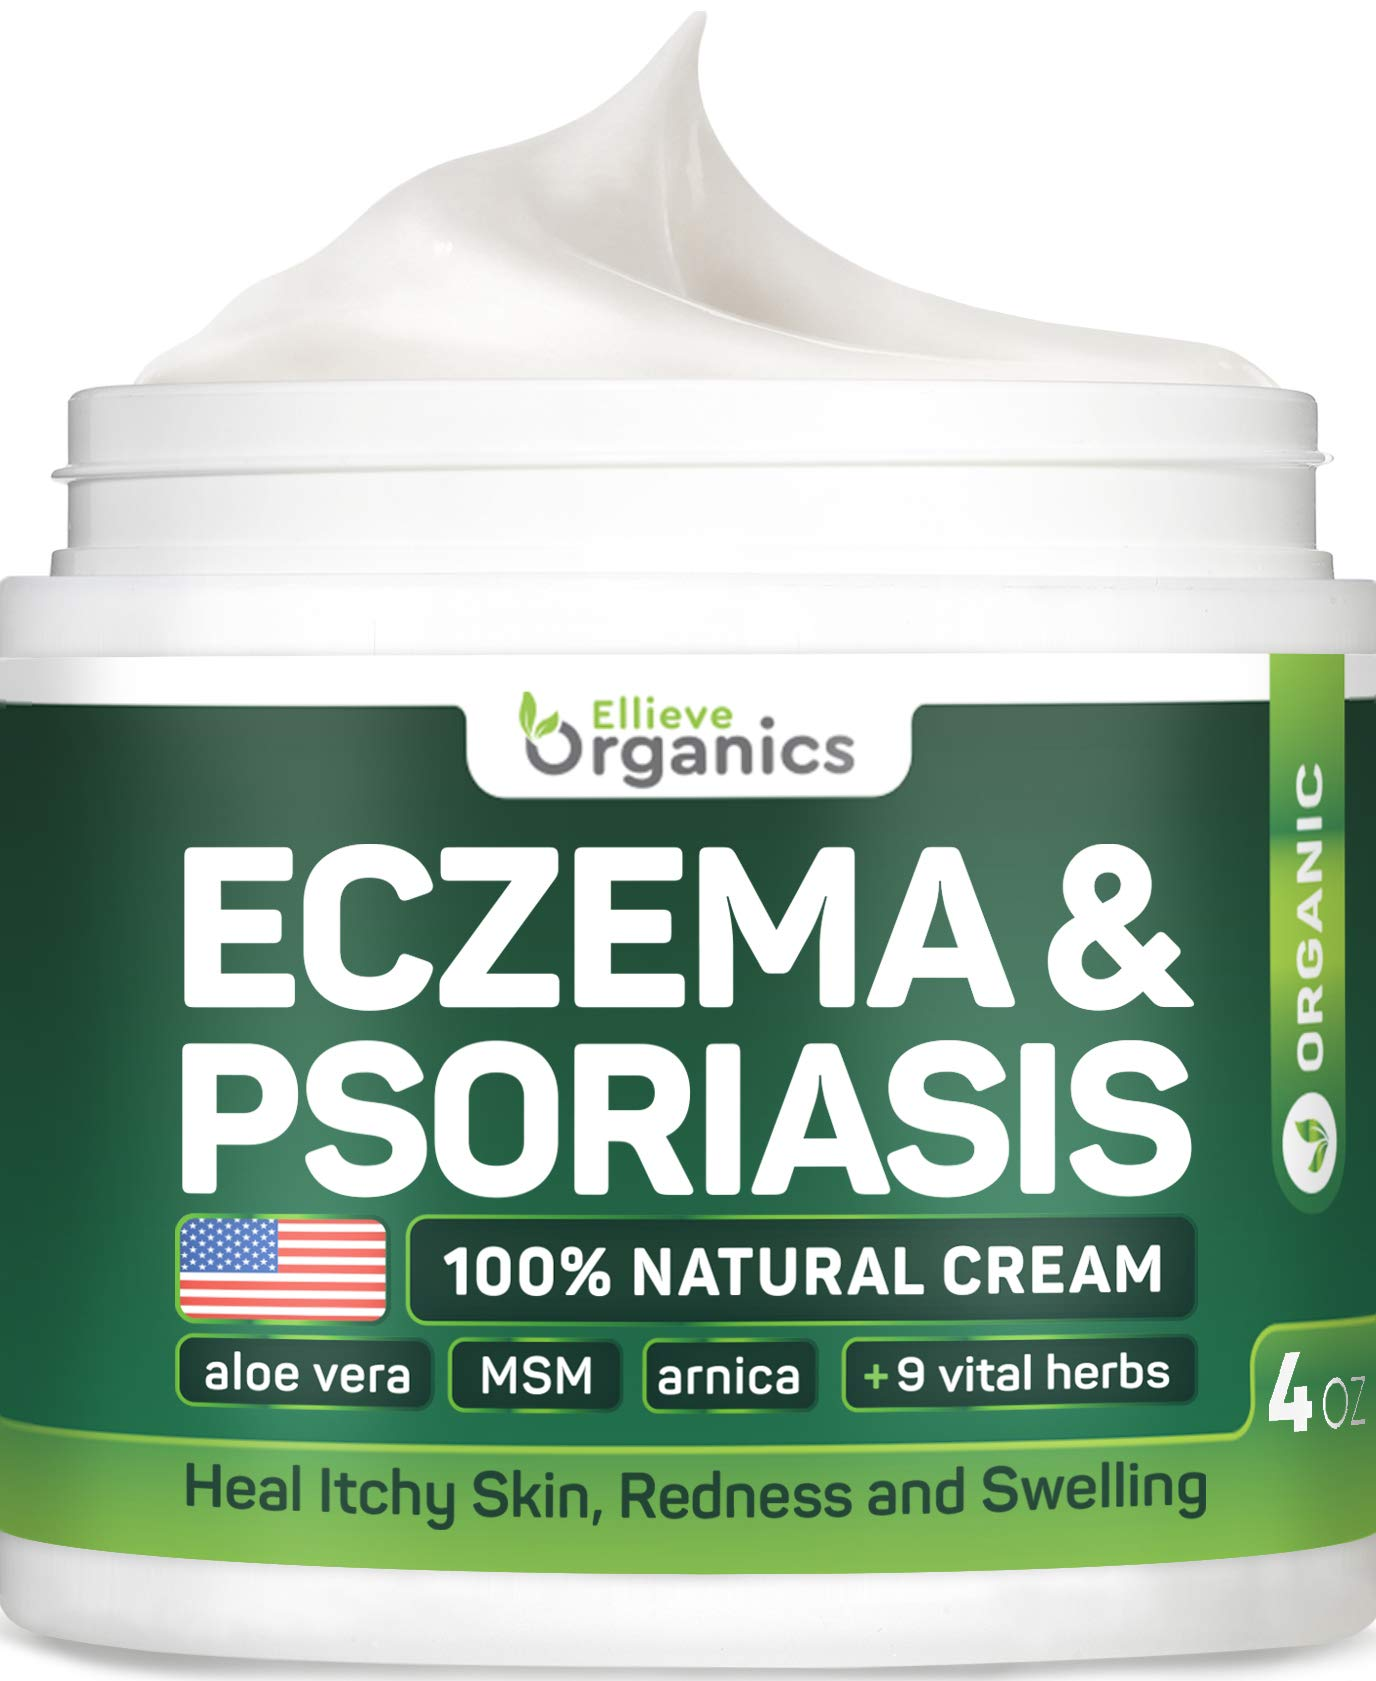 Eczema Cream Moisturizer - Maximum Strength Eczema Therapy with Honey & MSM - Made in USA - Natural Treatment for Eczema Dermatitis, Psoriasis, Rosacea Relief - Allergen-Tested, Steroid-Free - 4 OZ by ELLIEVE Organics